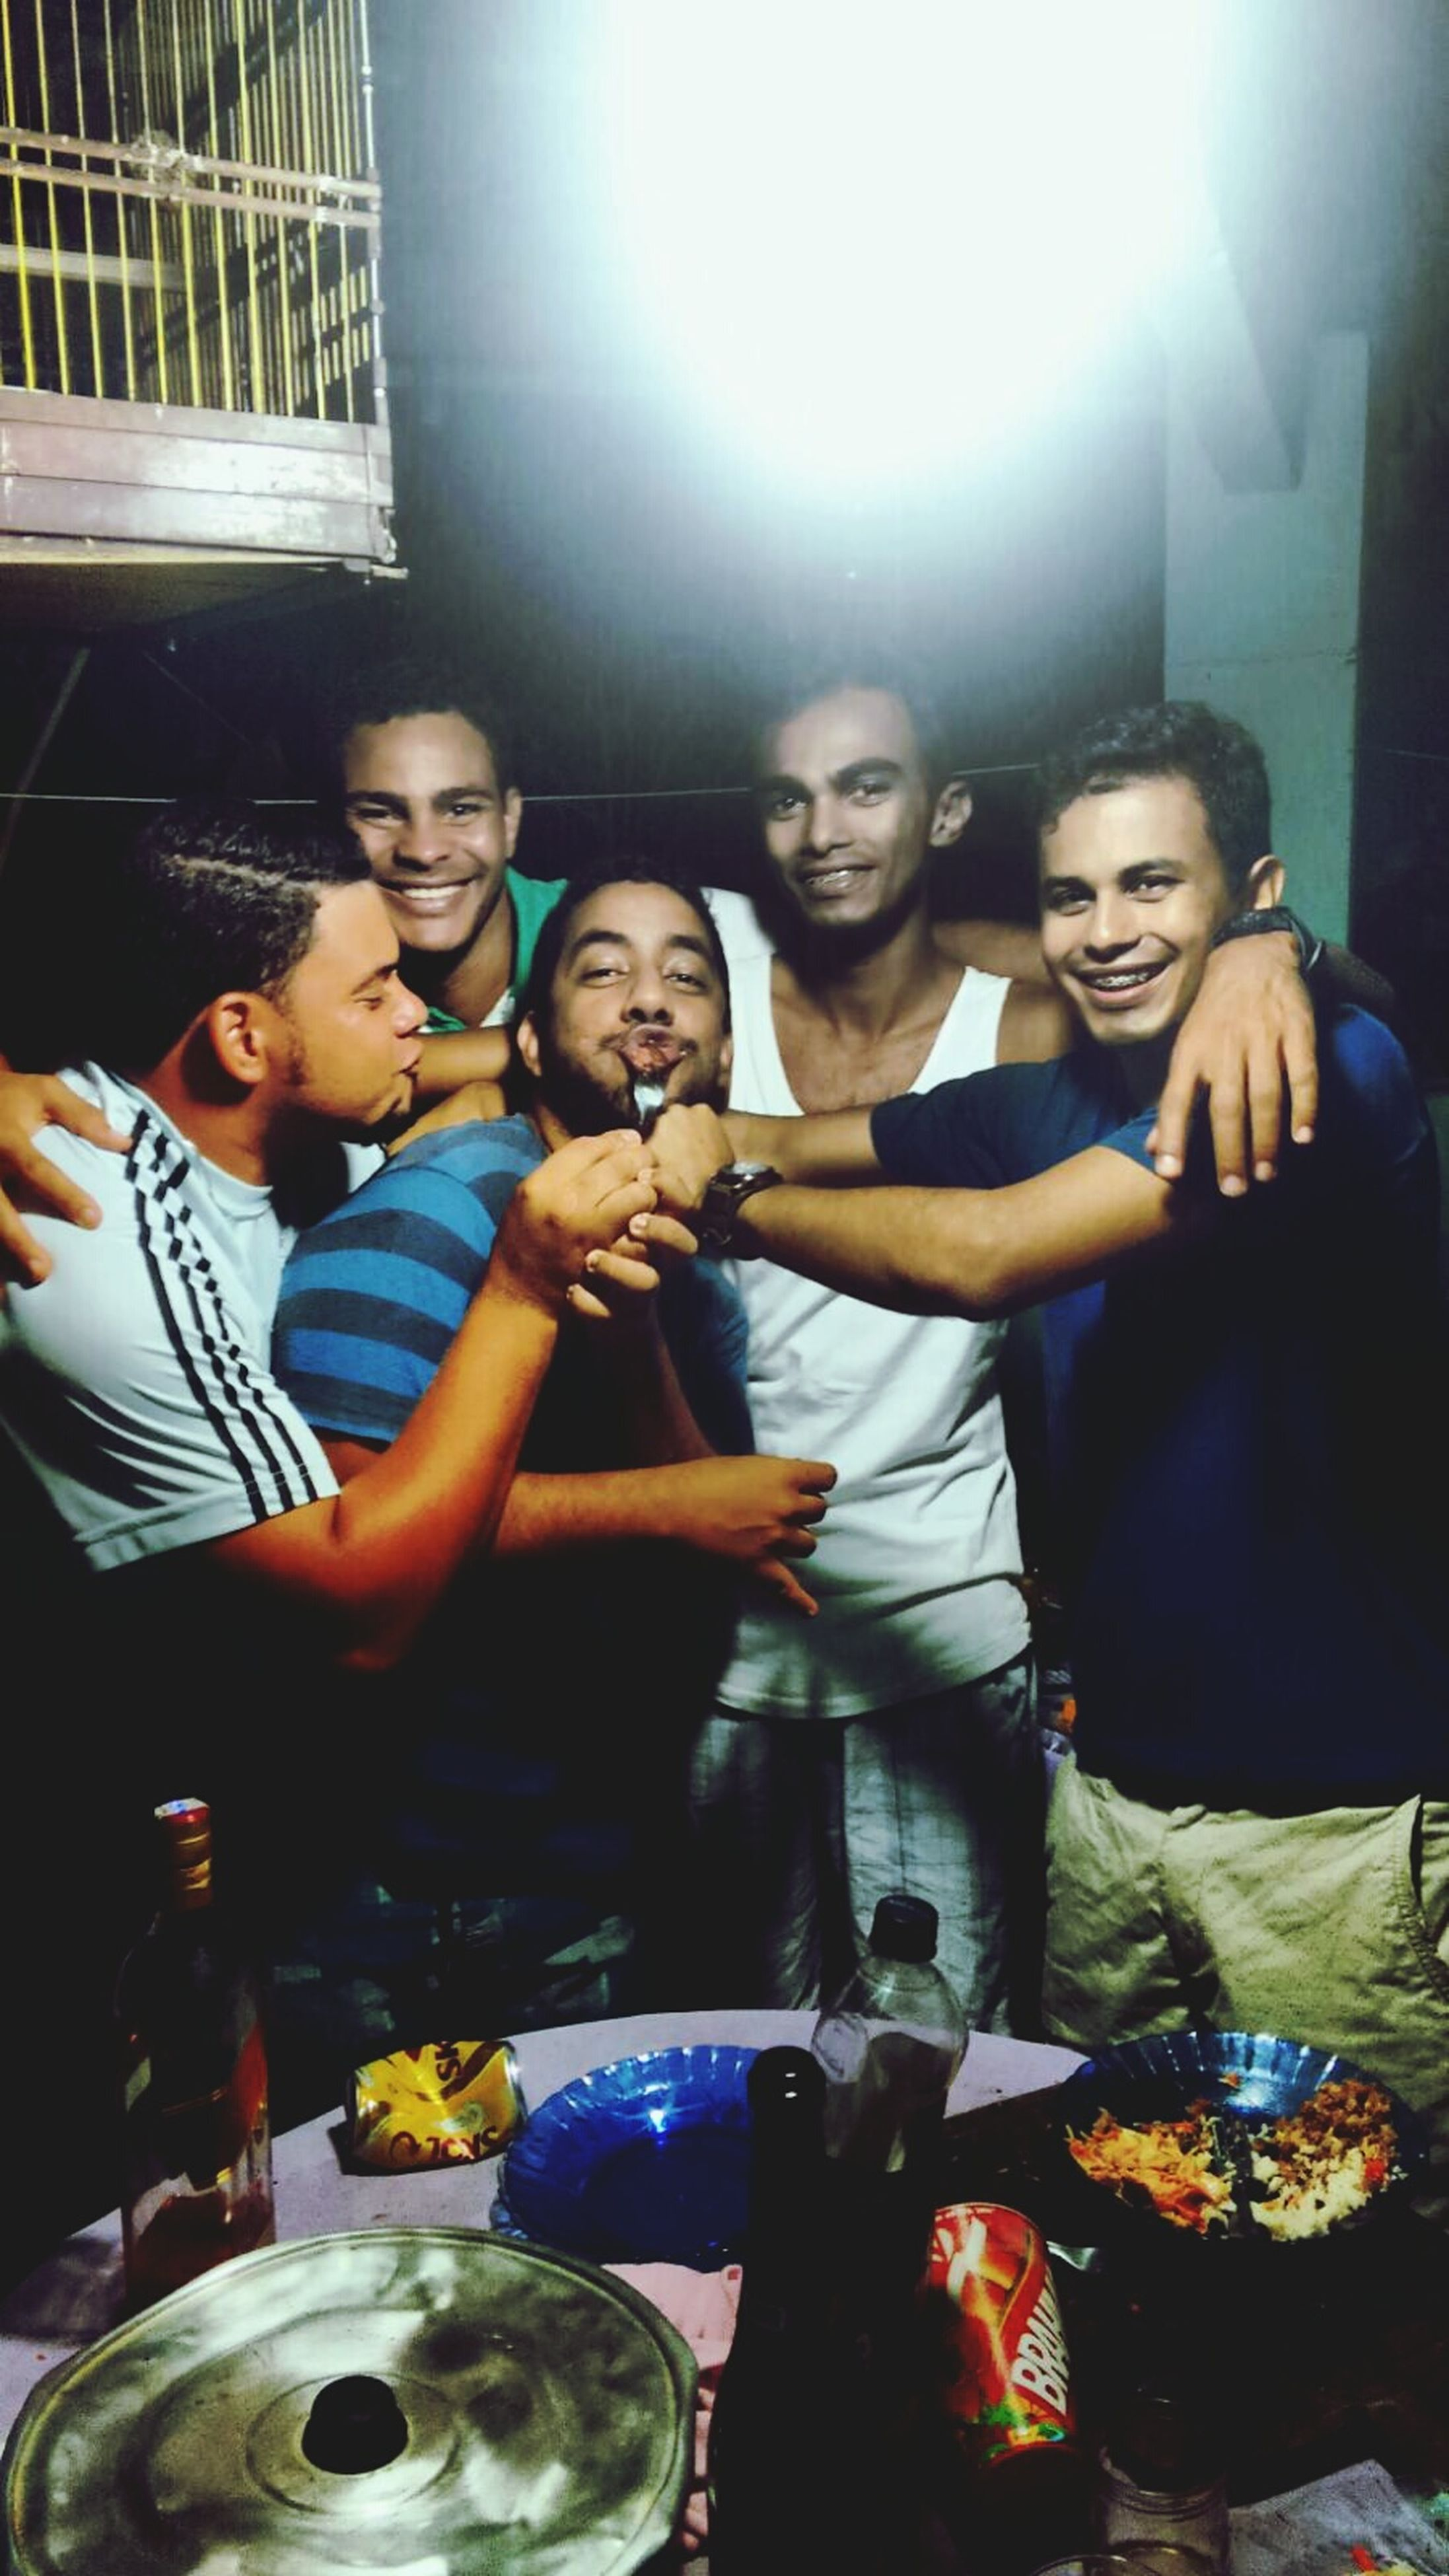 togetherness, person, lifestyles, bonding, leisure activity, young adult, casual clothing, happiness, portrait, looking at camera, indoors, friendship, smiling, young men, love, front view, sitting